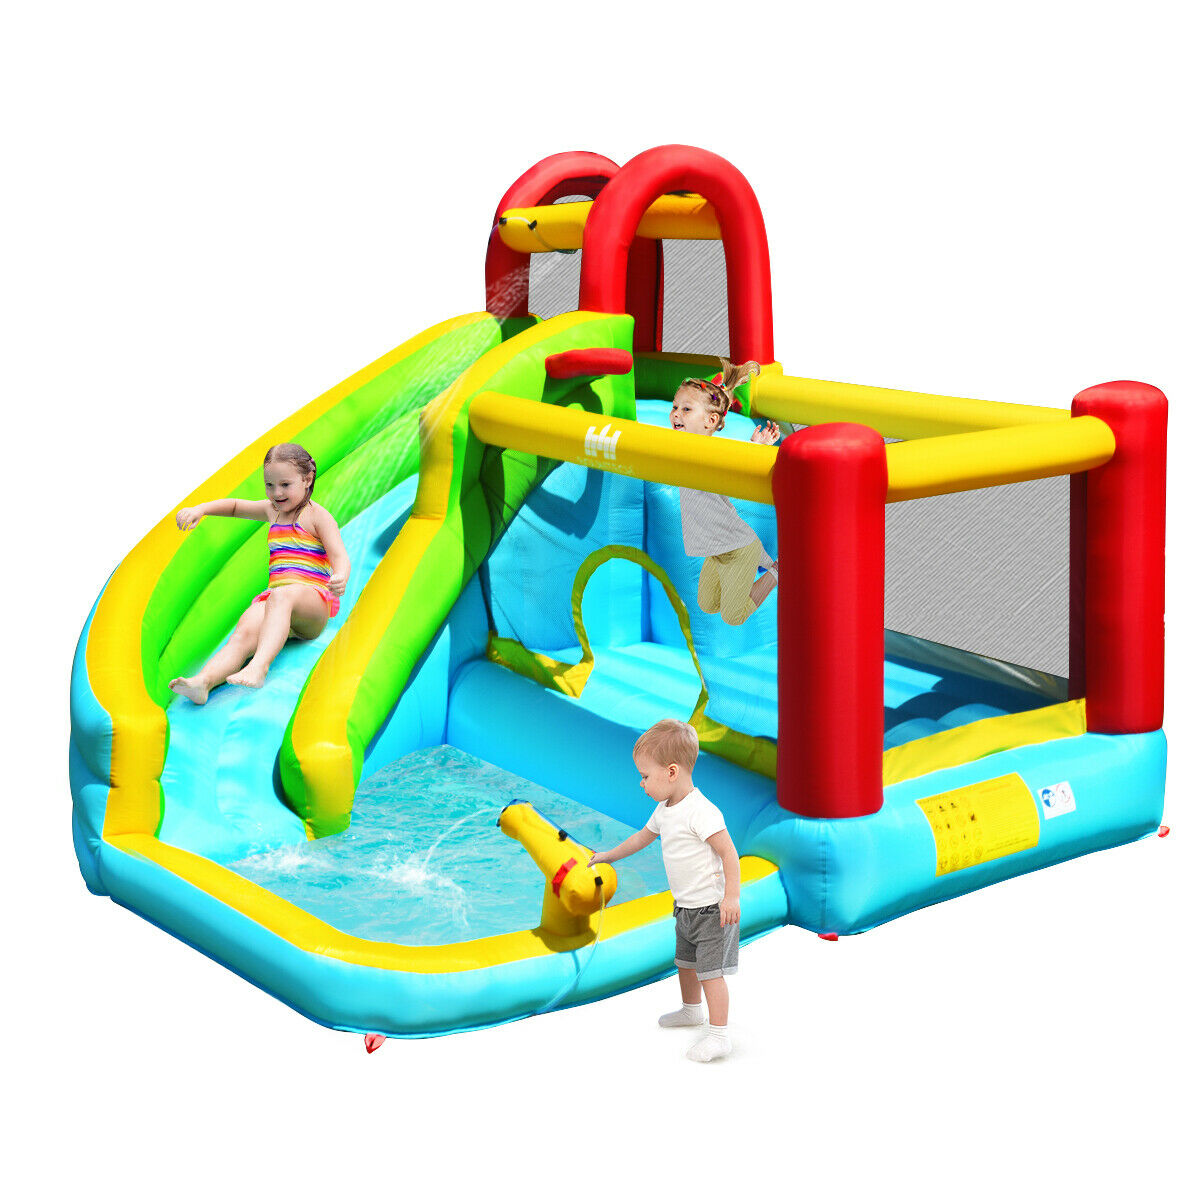 Inflatable Water Slide Bounce House Jumper Kids Swimming Pool Commercial Banzai For Sale Online Ebay